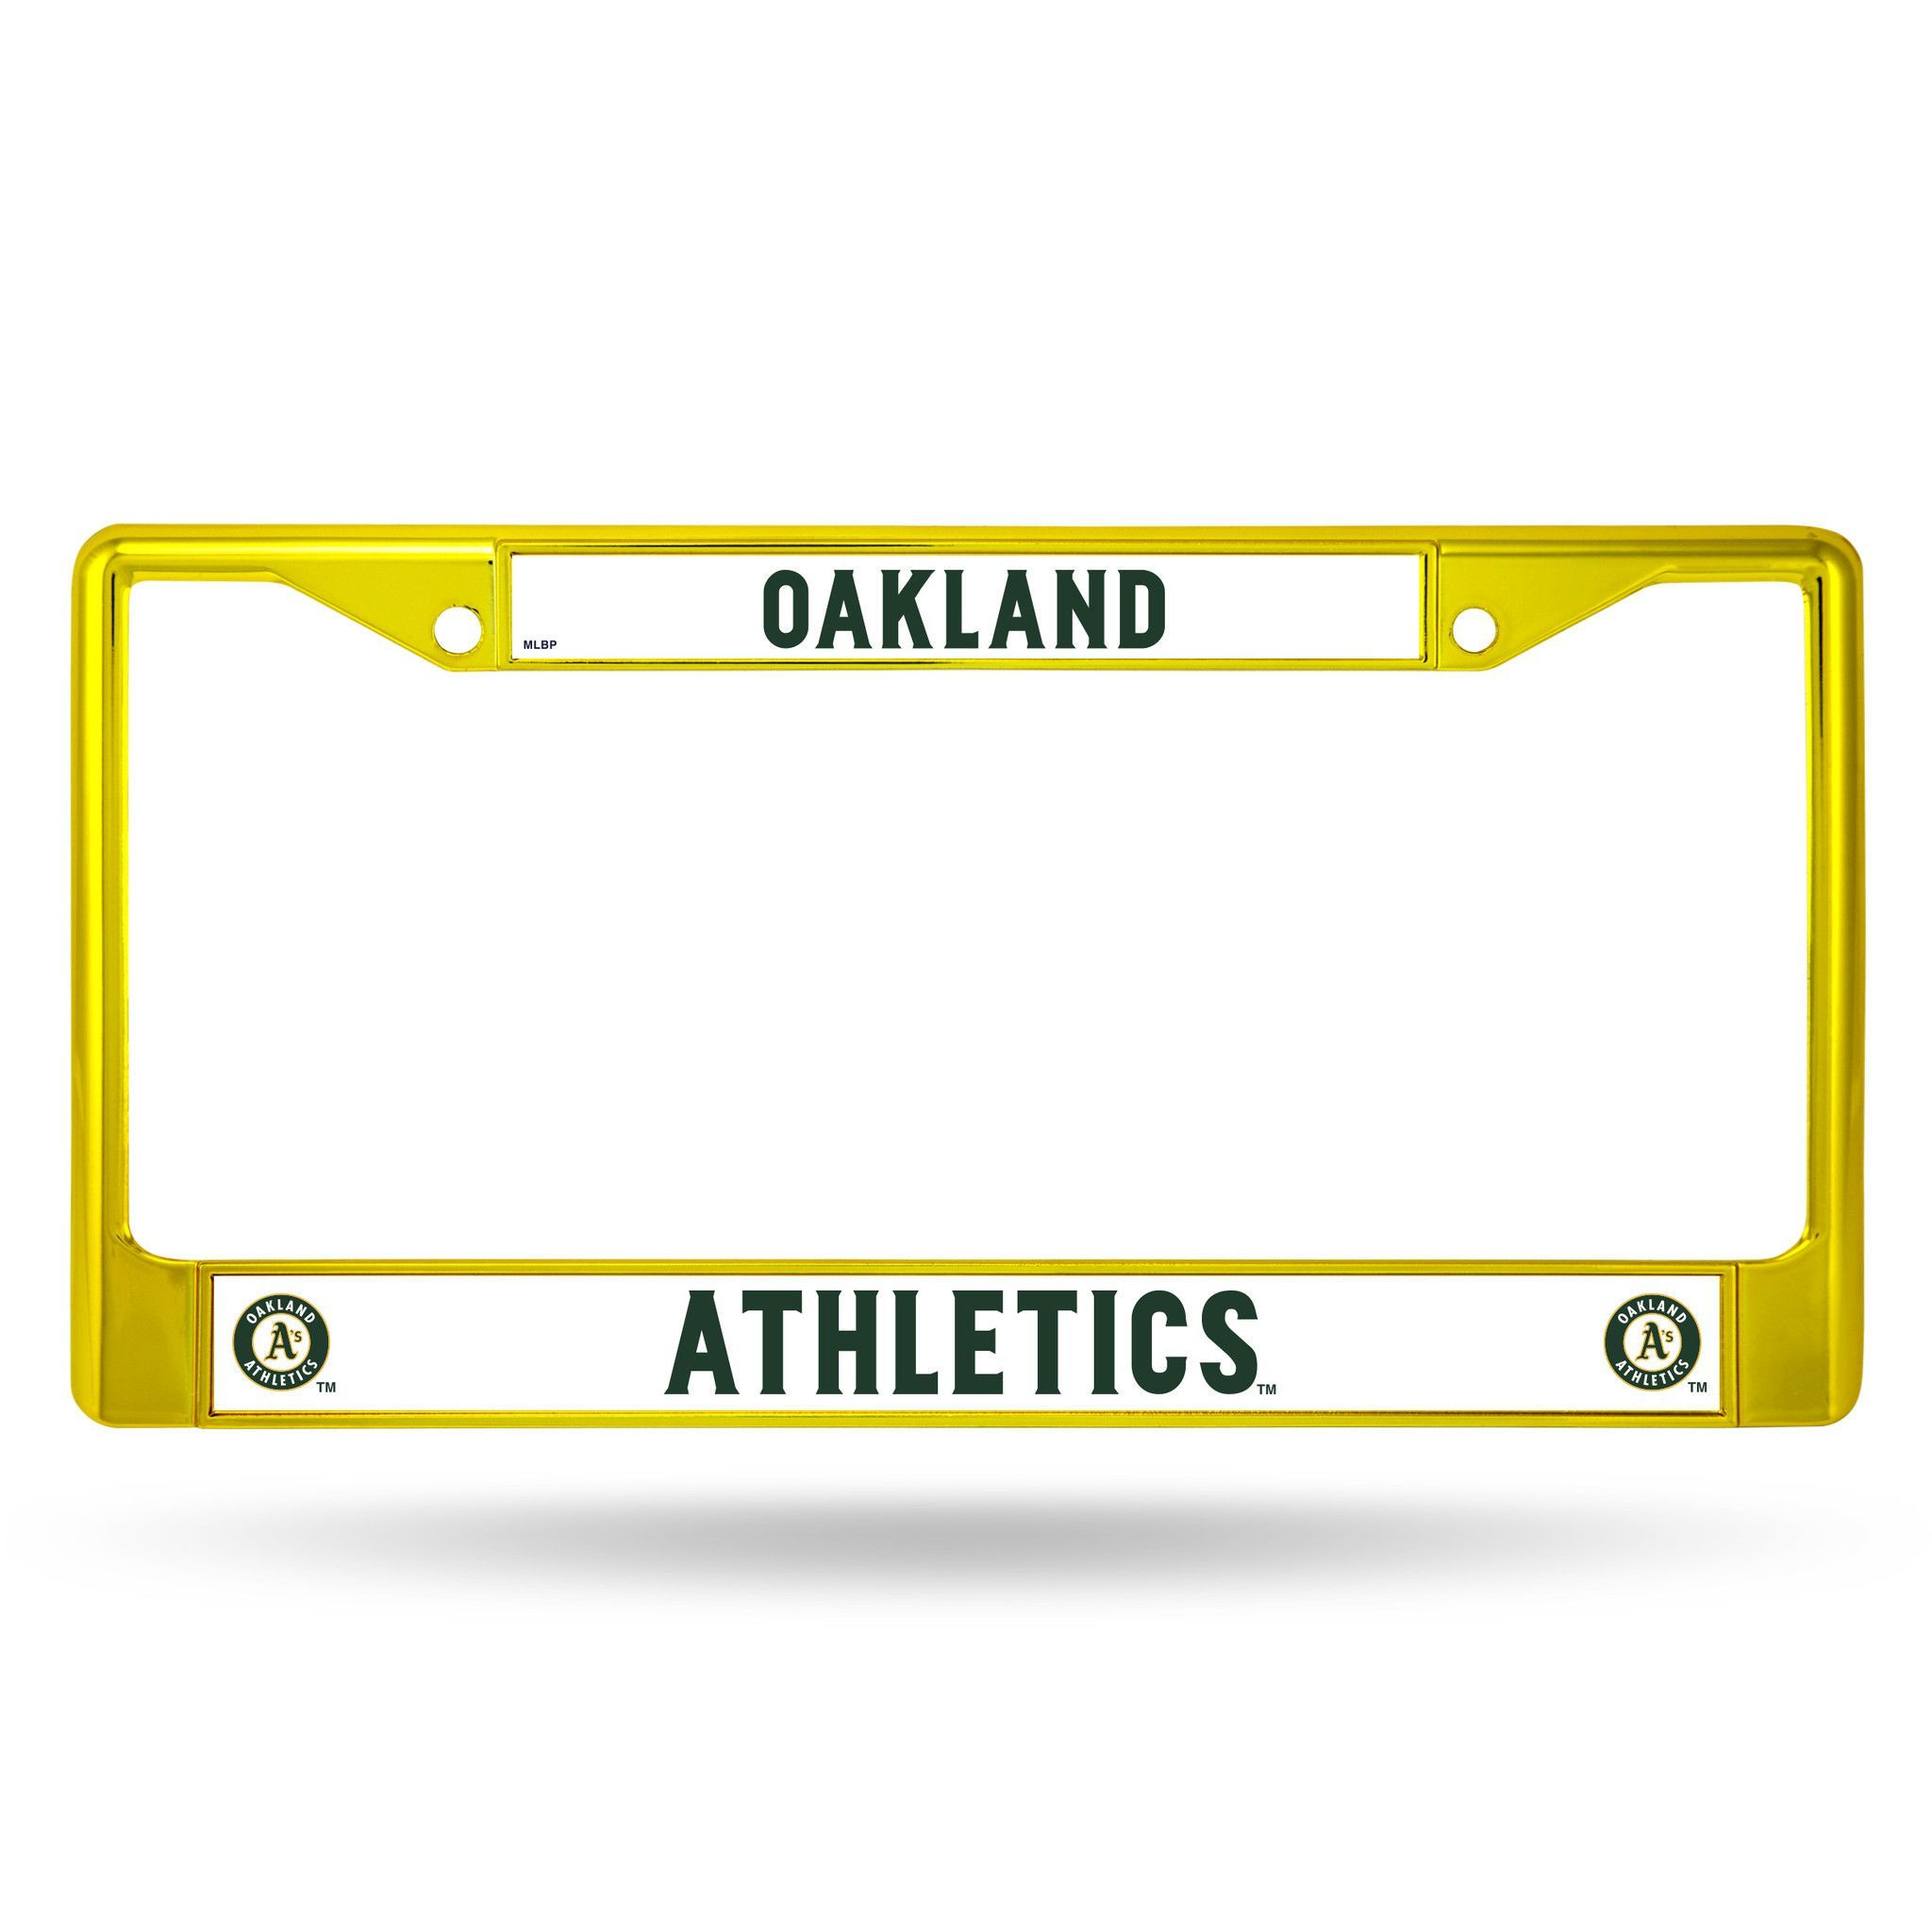 Oakland Athletics Metal License Plate Frame - Yellow